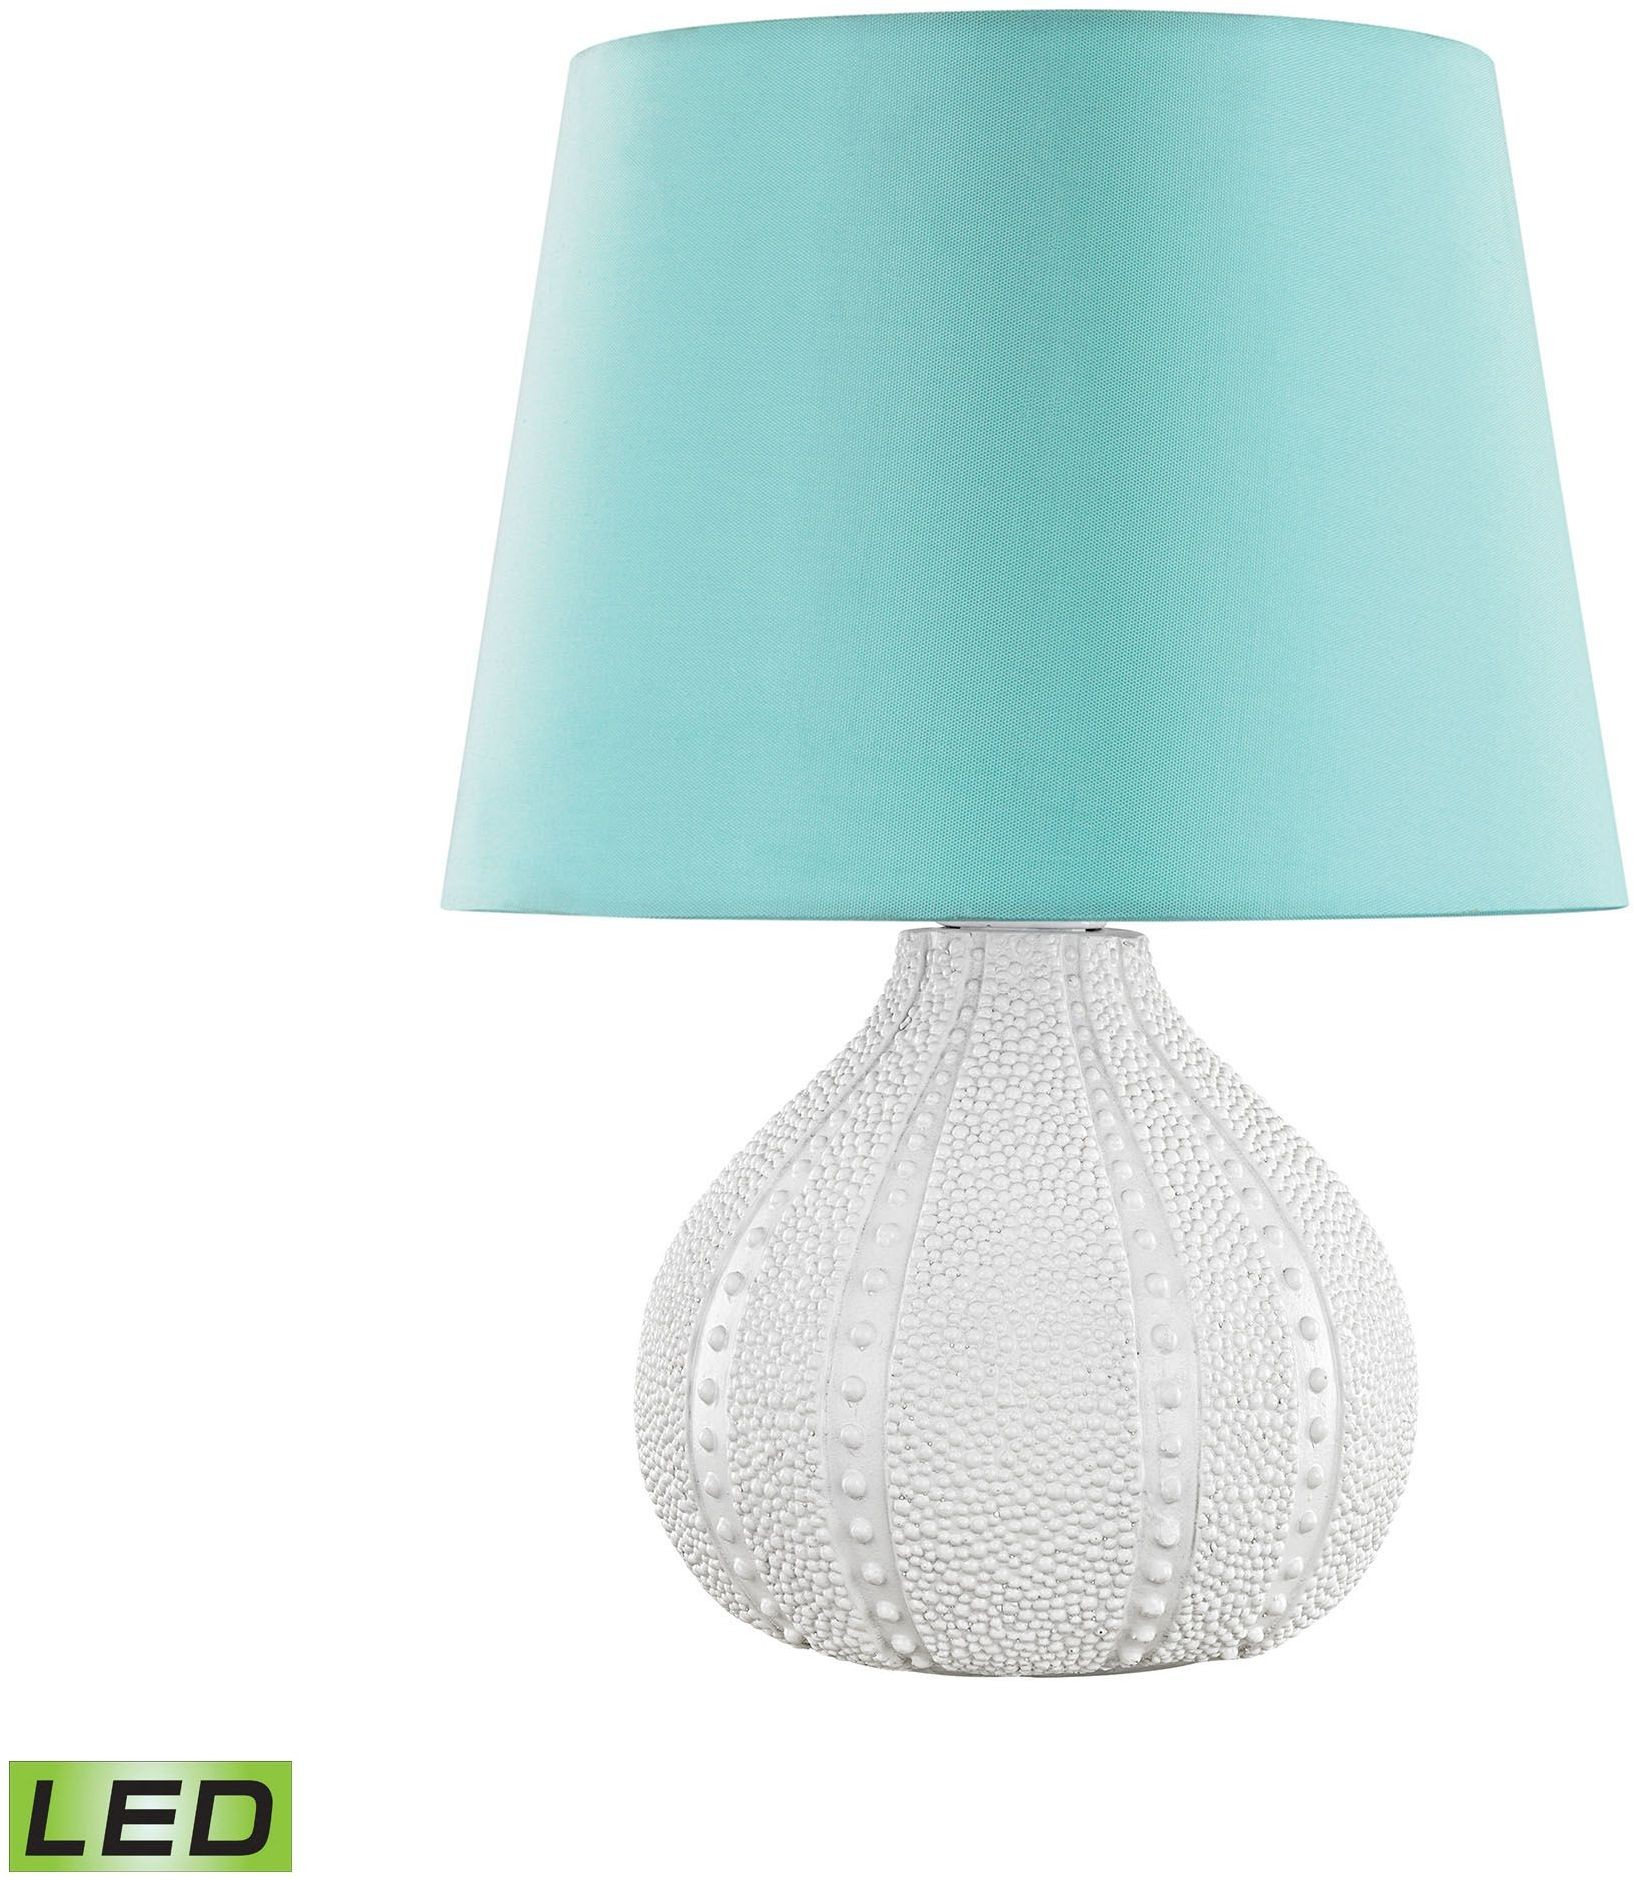 Outdoor Table Lamp Led: Aruba White And Sea Green Shade Outdoor LED Table Lamp